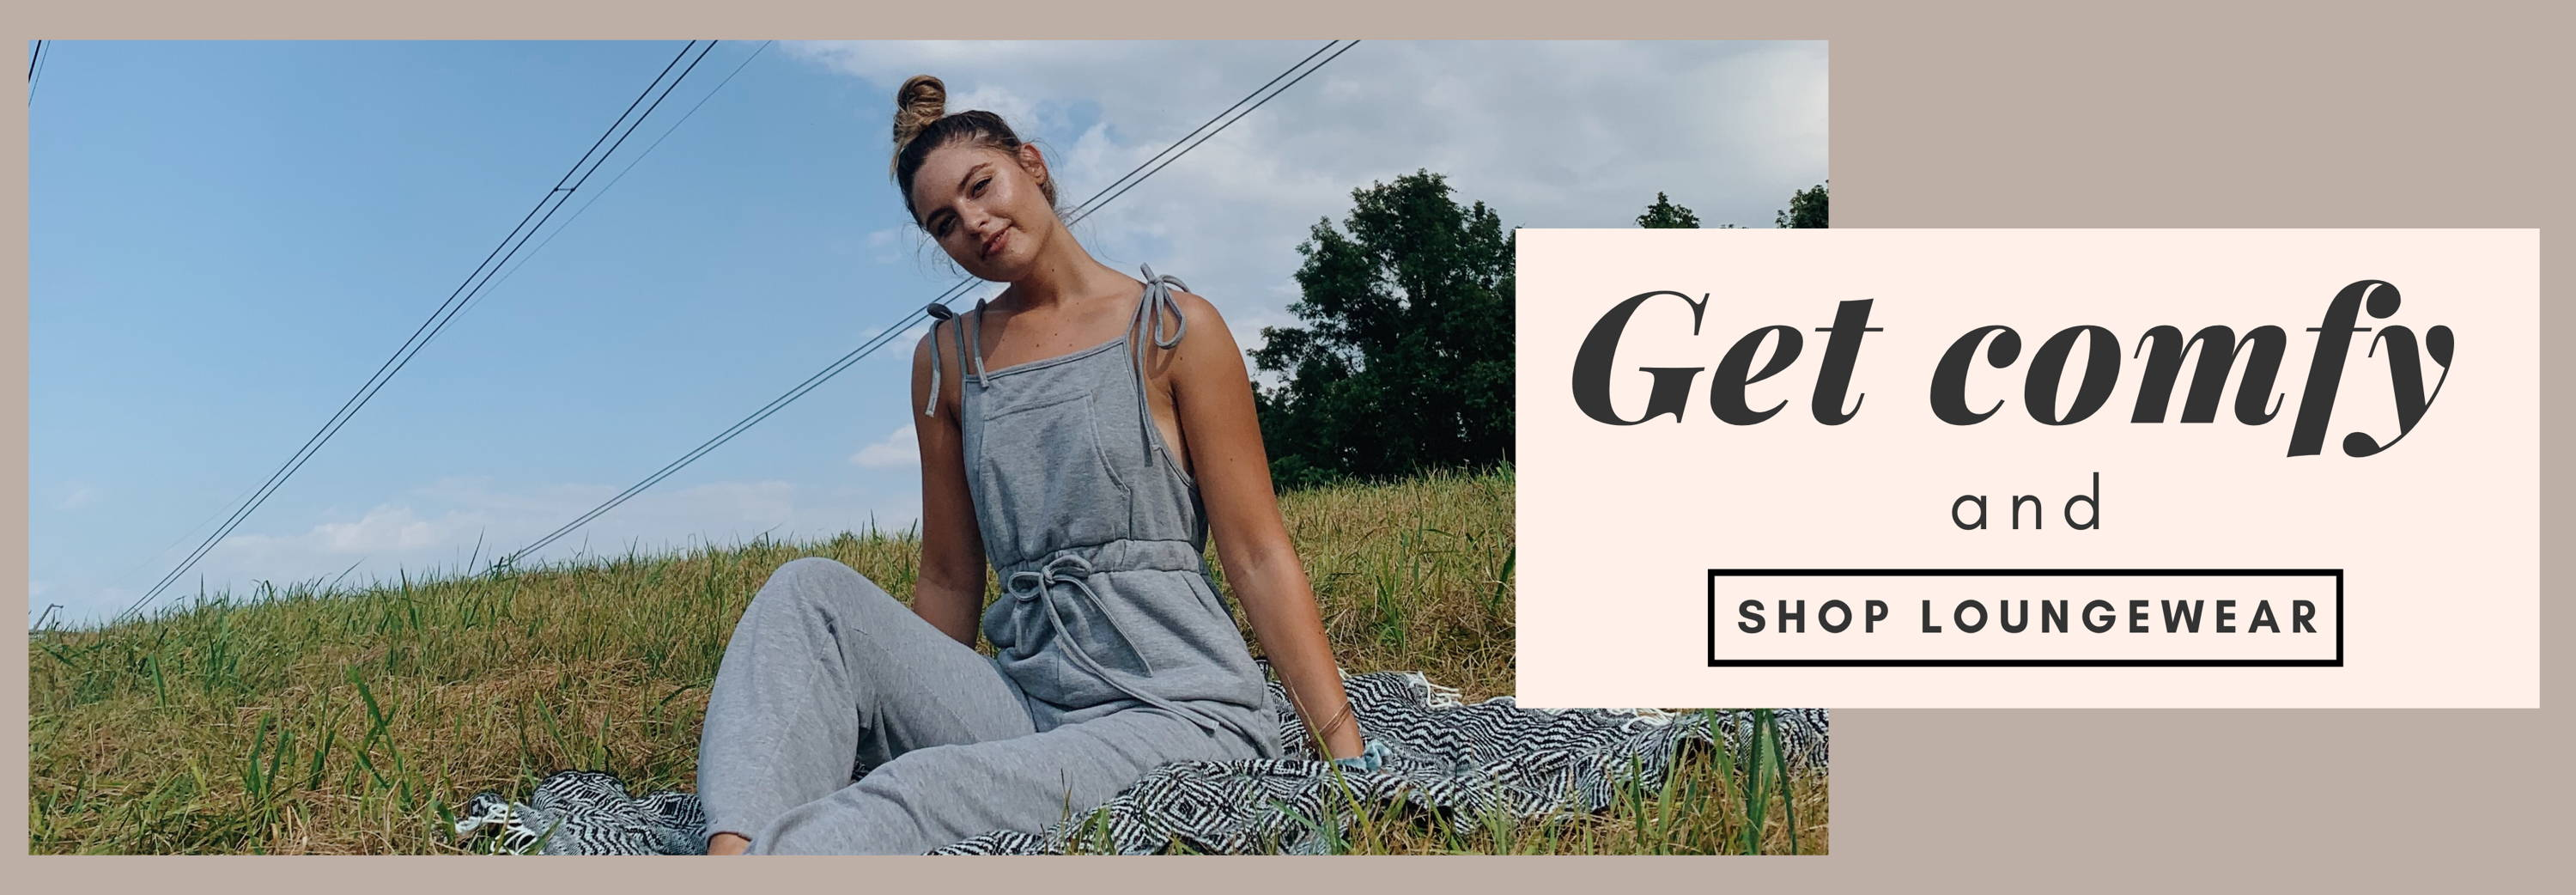 Women's Loungewear- sweatpants, jumpsuits, matching sets, and more